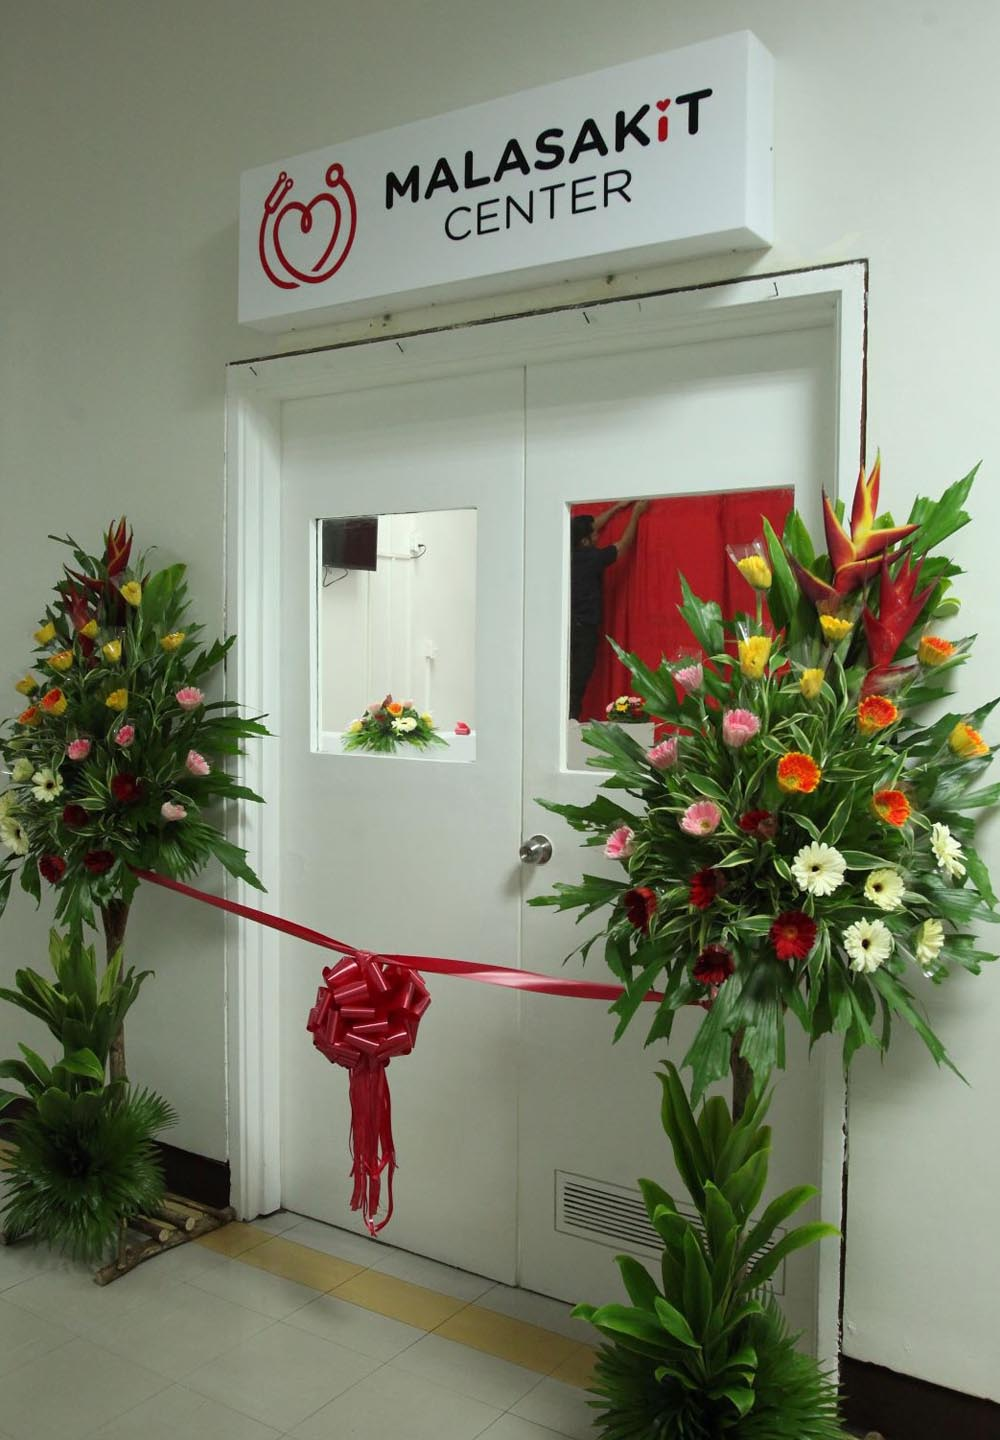 Malasakit Center at the Lung Center of the Philippines inaugurated